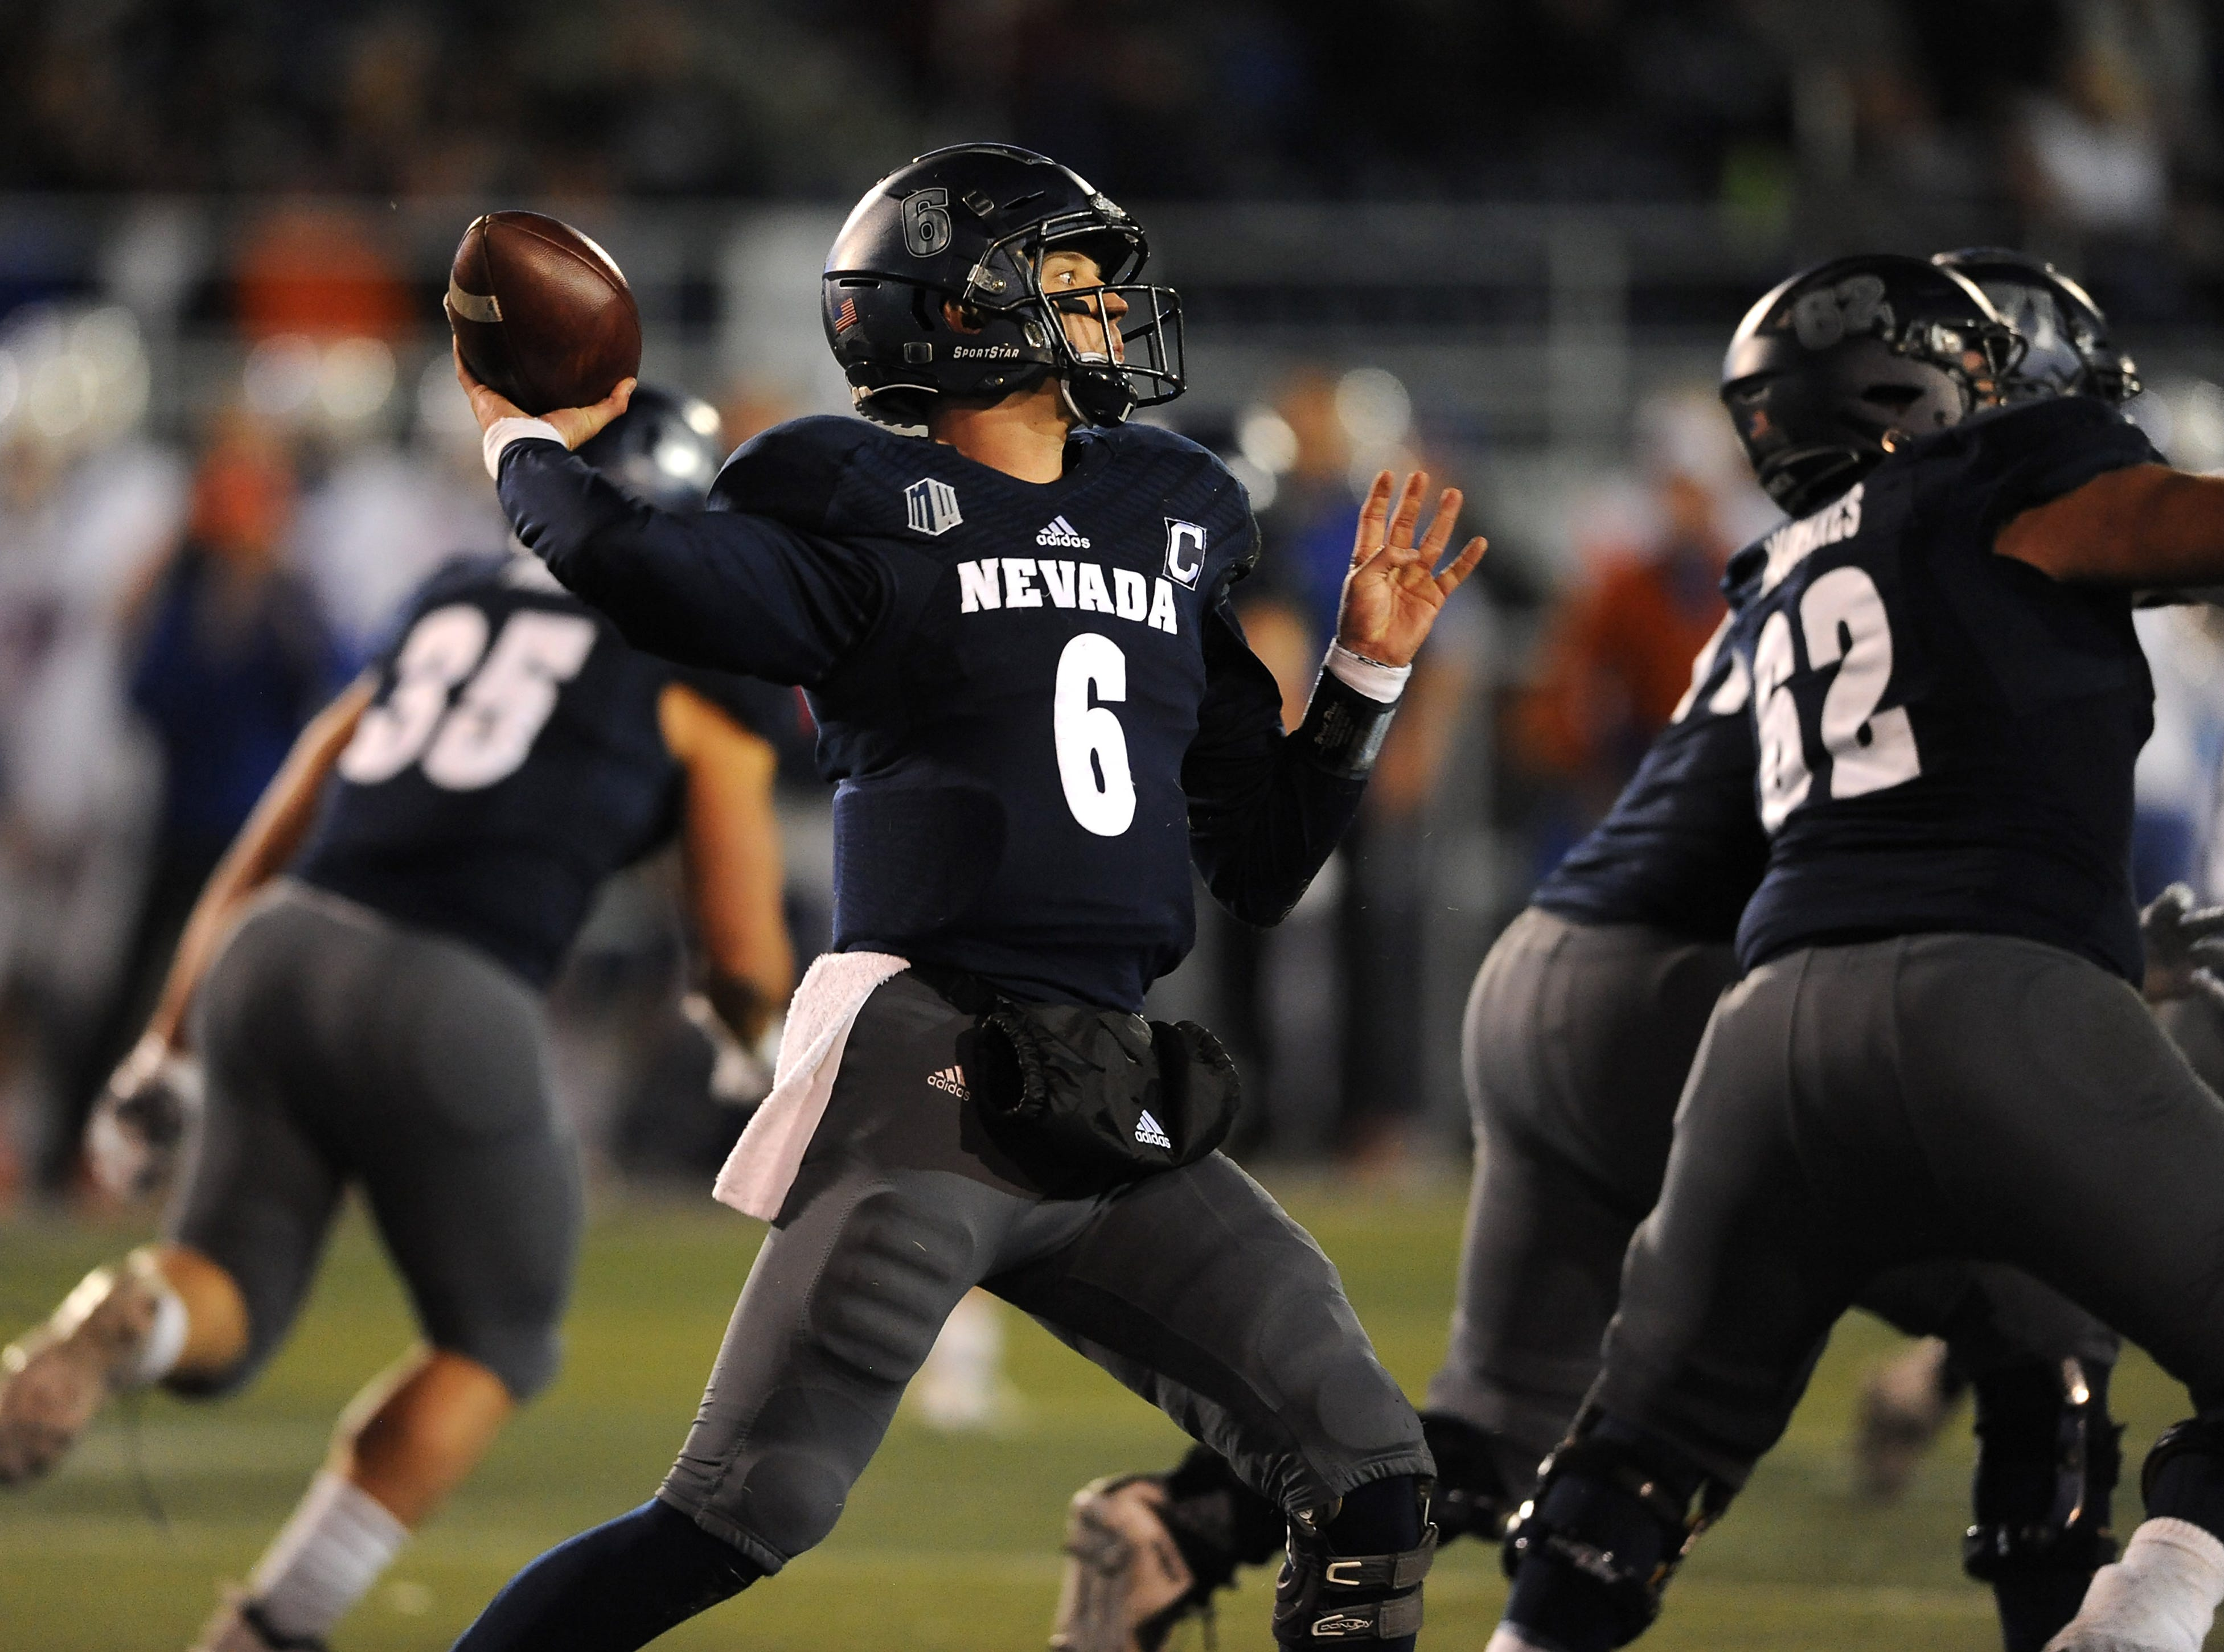 Nevada's Ty Gangi (6) throws a pass while taking on Boise St. during their football game at Mackay Stadium in Reno on Oct. 13, 2018.